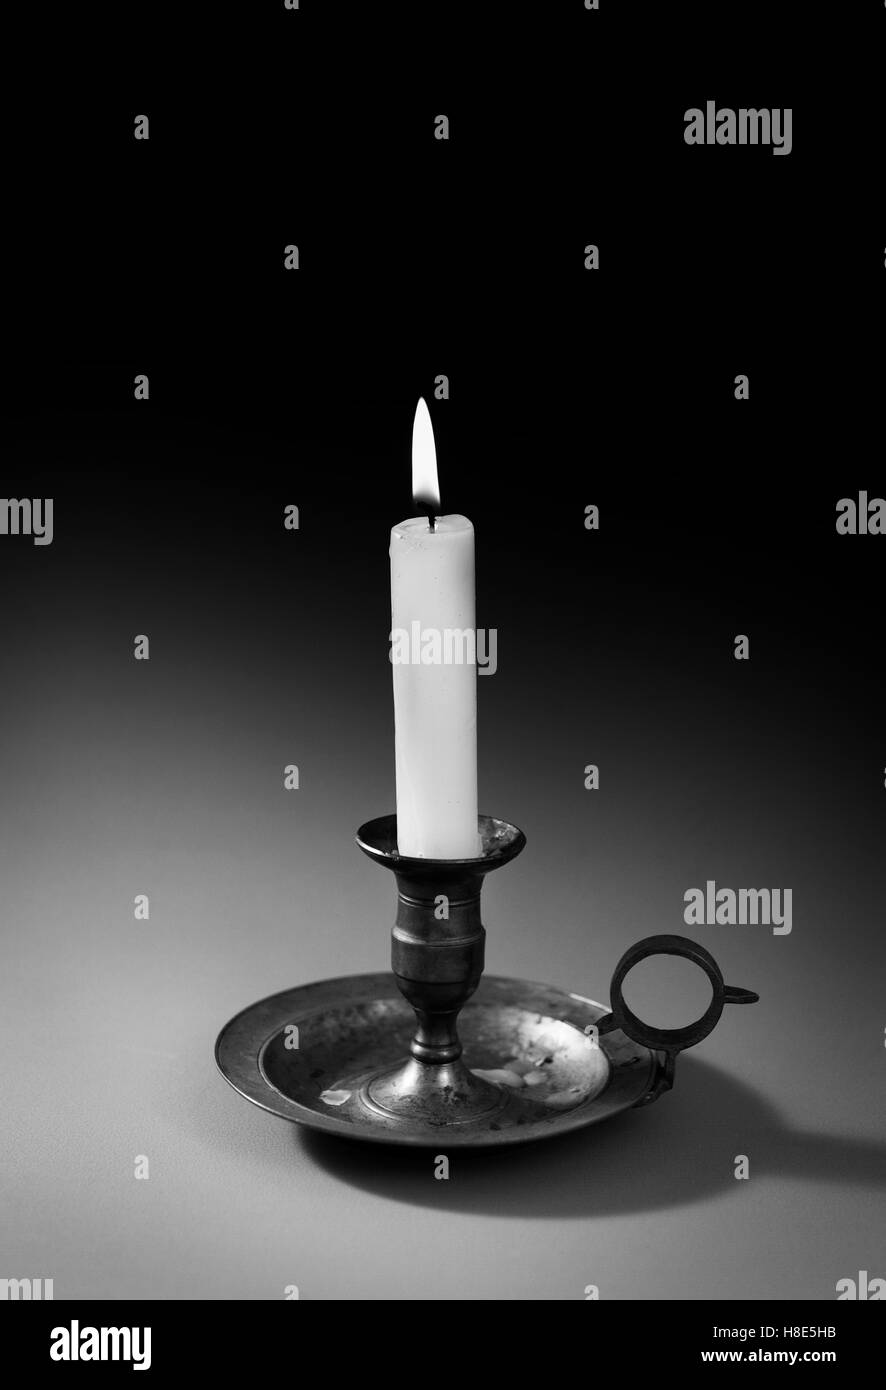 Candle Black and White Stock Photos  for candle photography black and white  35fsj